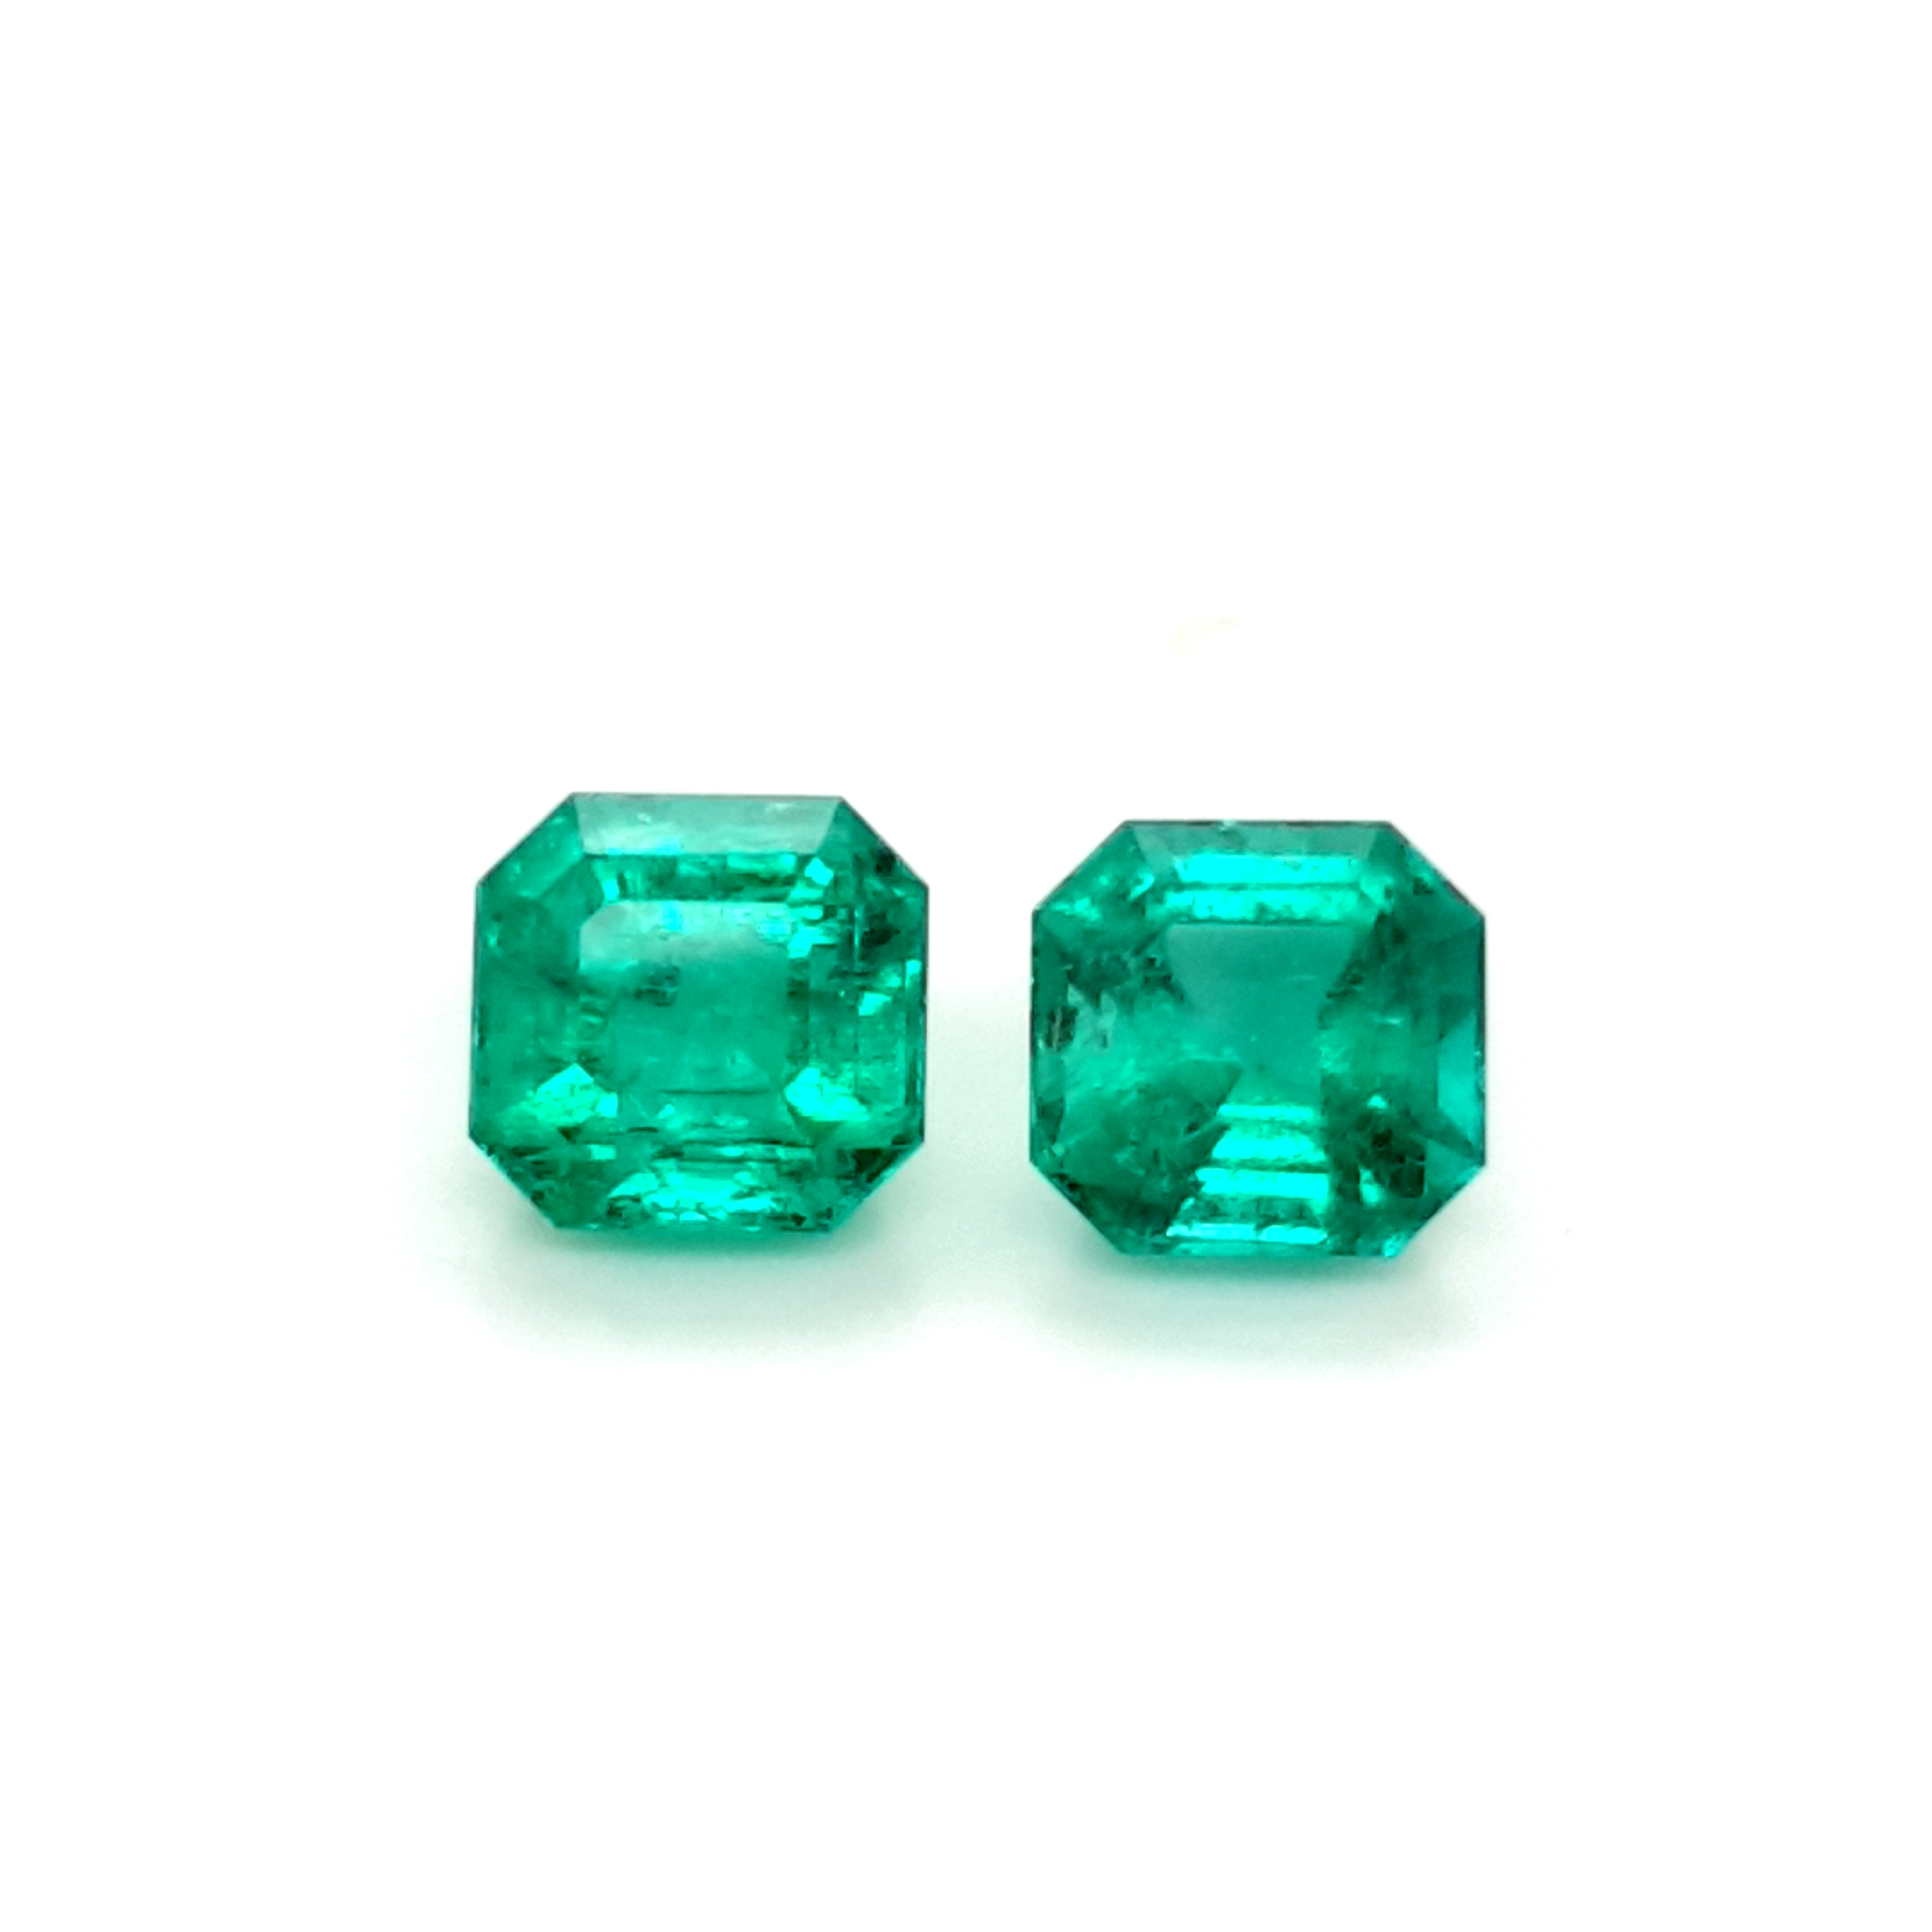 4,08ct. Emerald from Colombia cert. EML18D2 ClaudiaHamann__2021-03-26-15-49-58